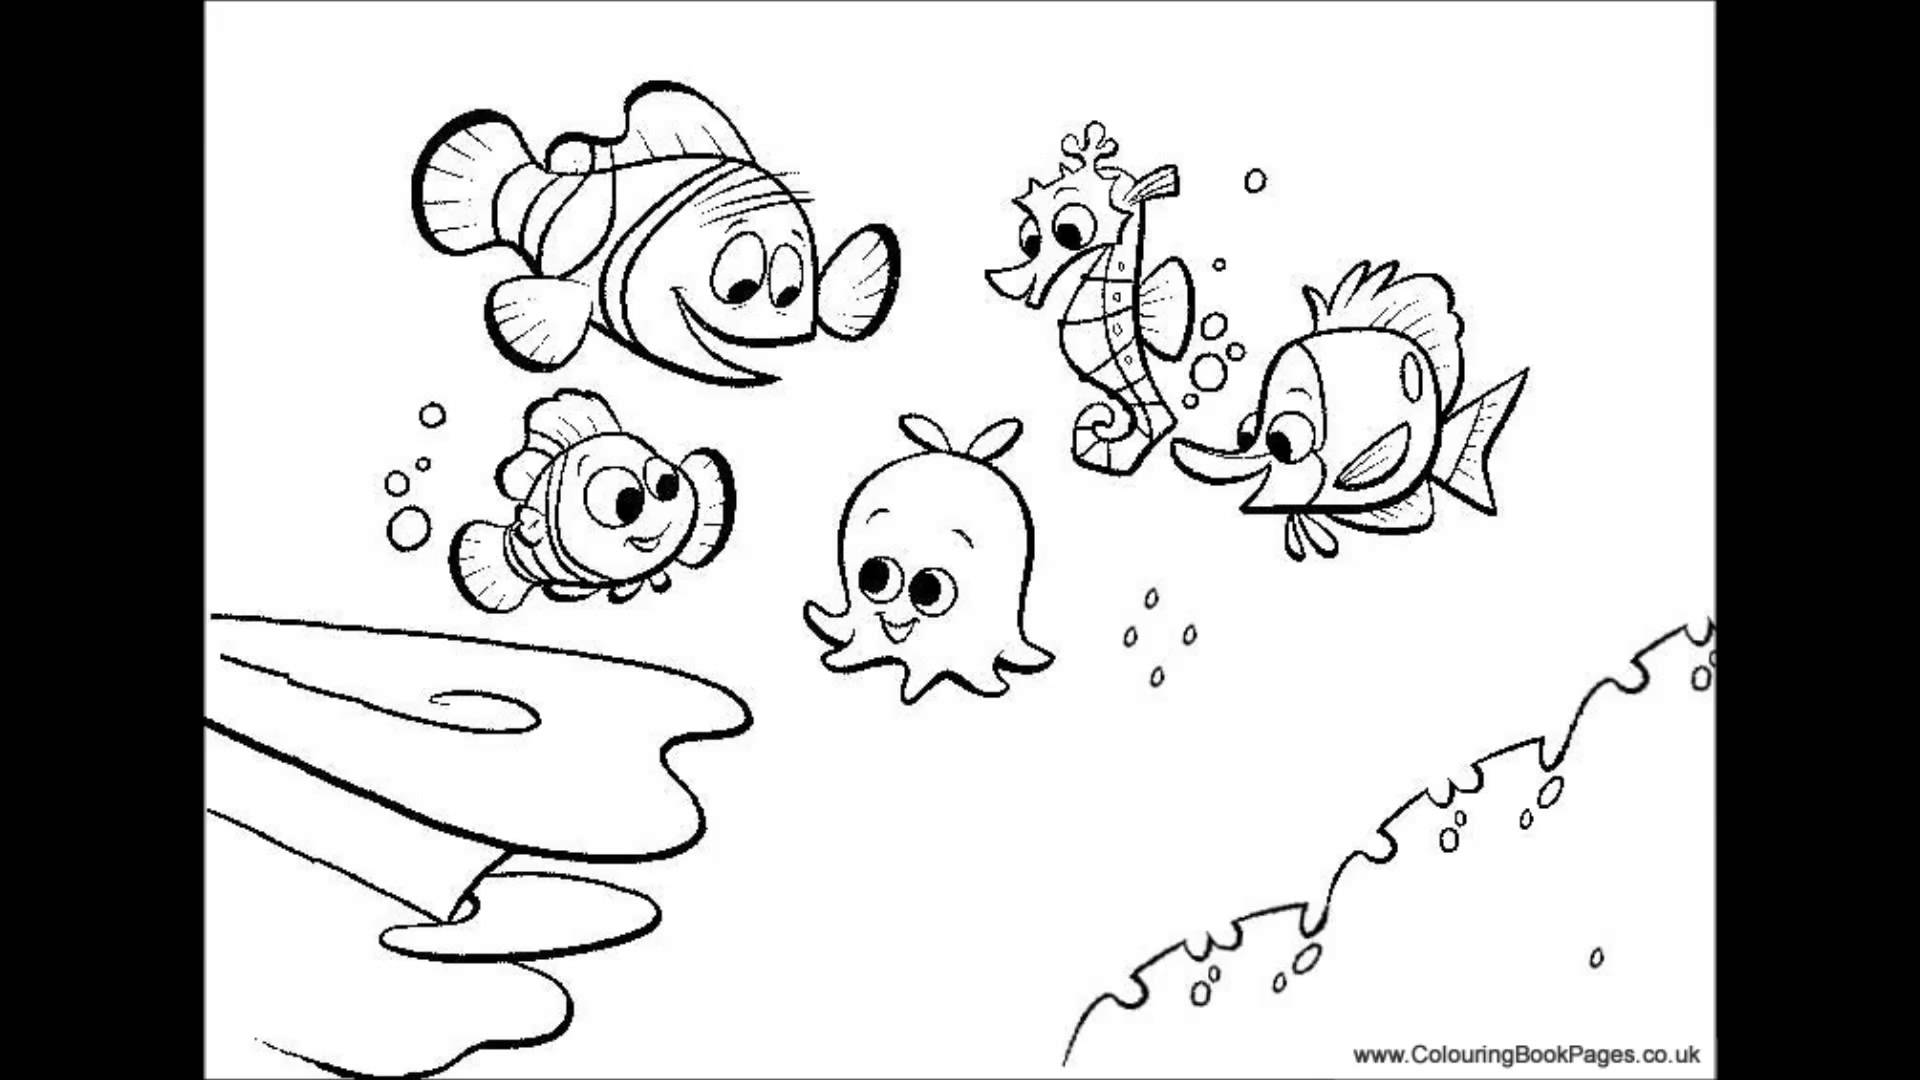 1920x1080 Simple Finding Nemo Coloring Pages Pdf To Down